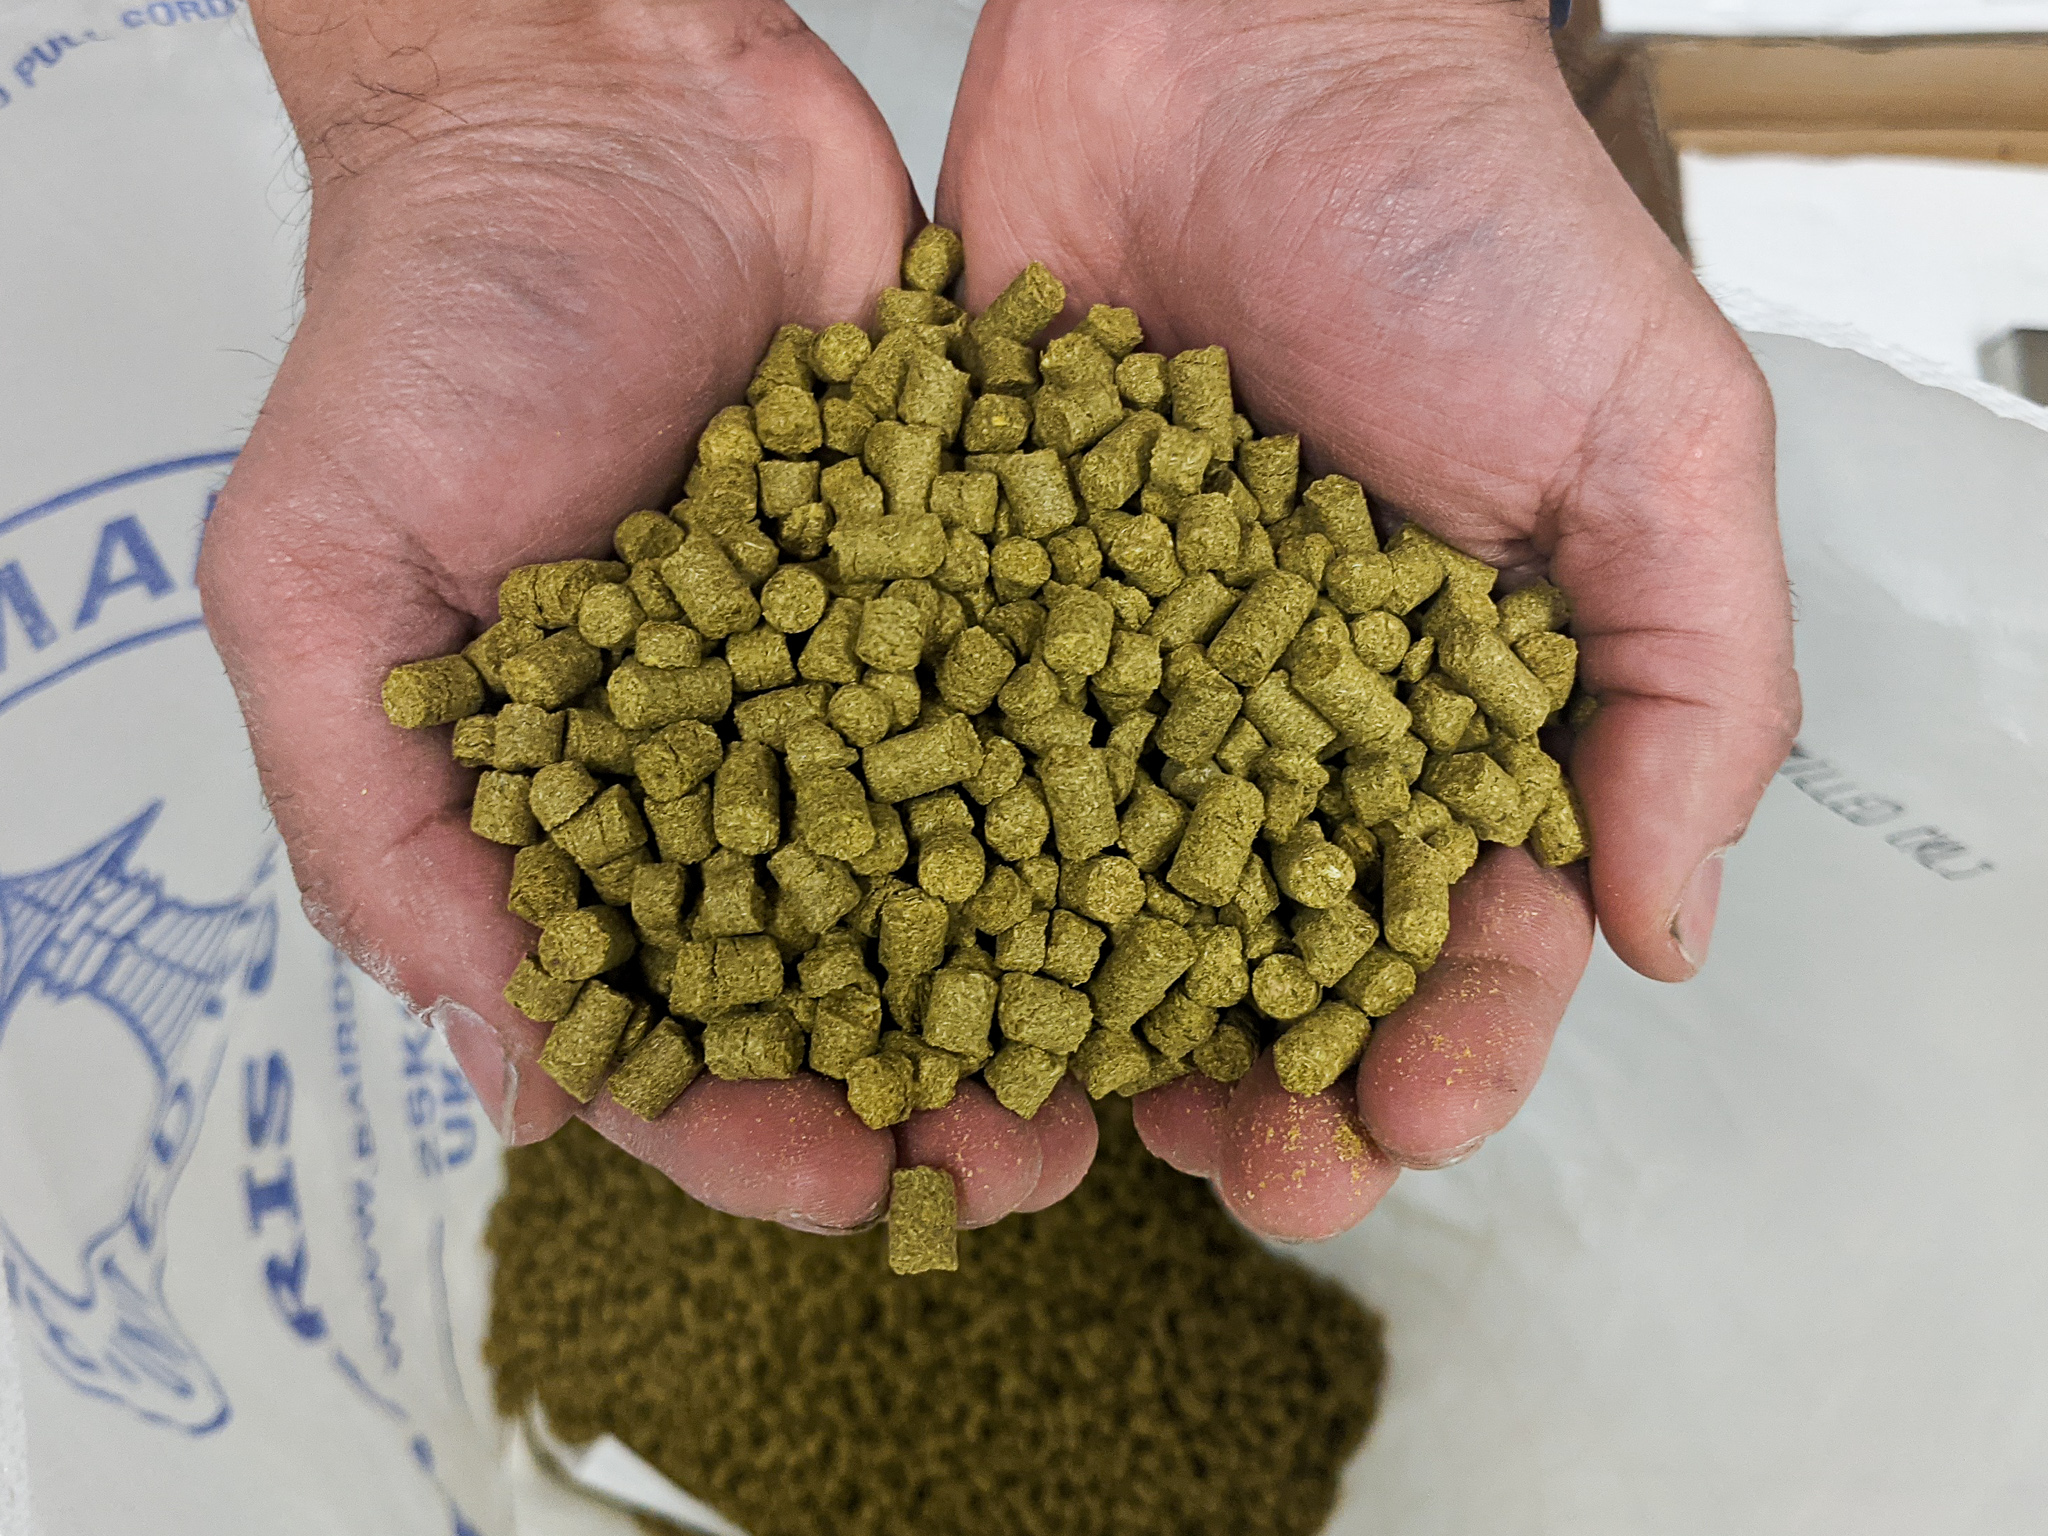 Pale Ale and IPA: What's the difference?